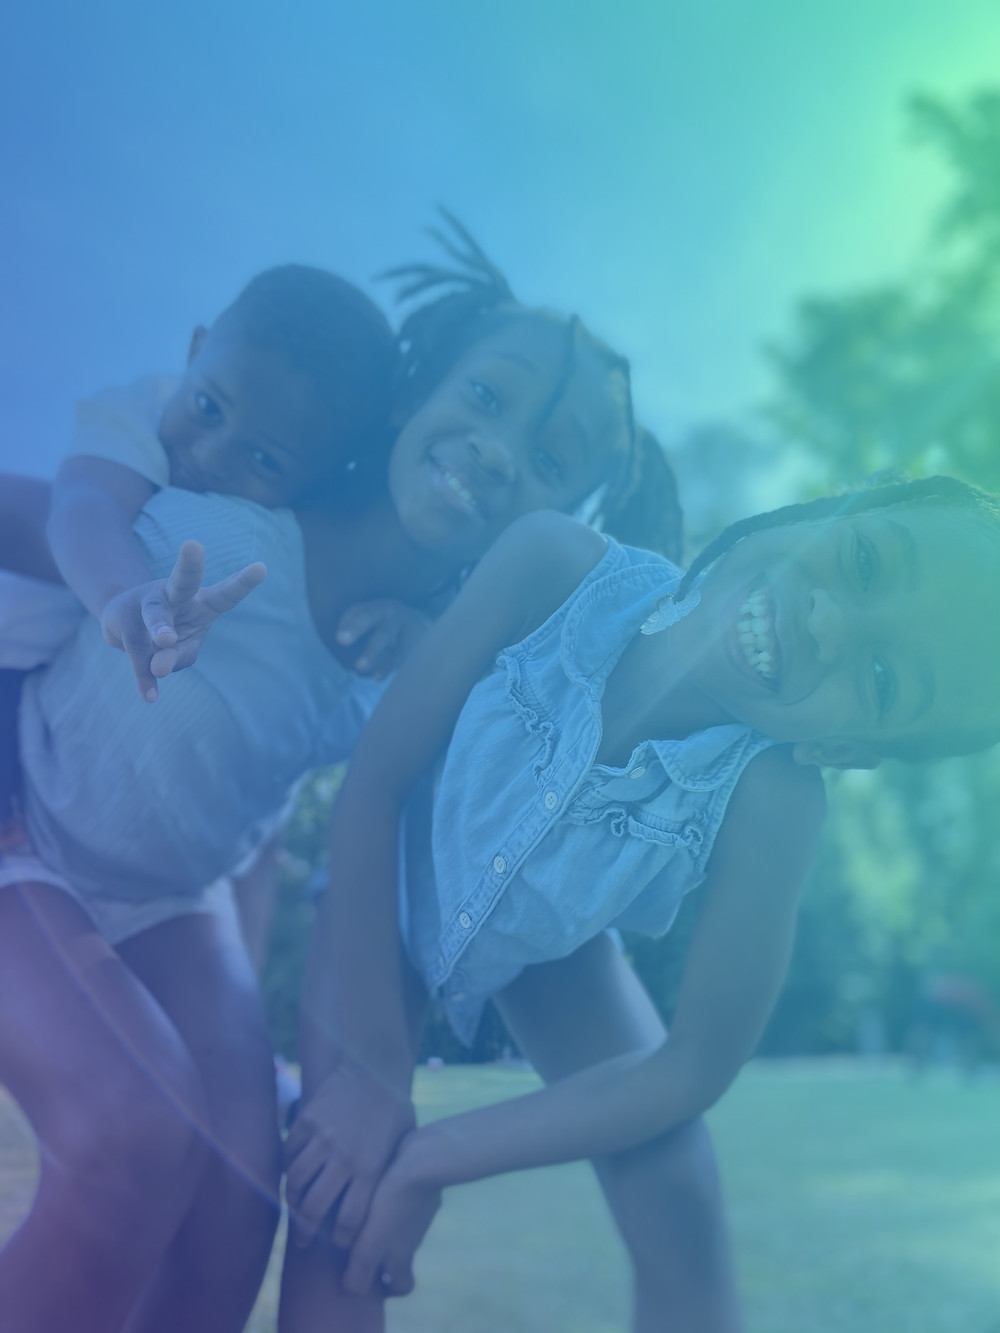 Optimizing the Wellbeing of Children: Pediatricians and Public Health